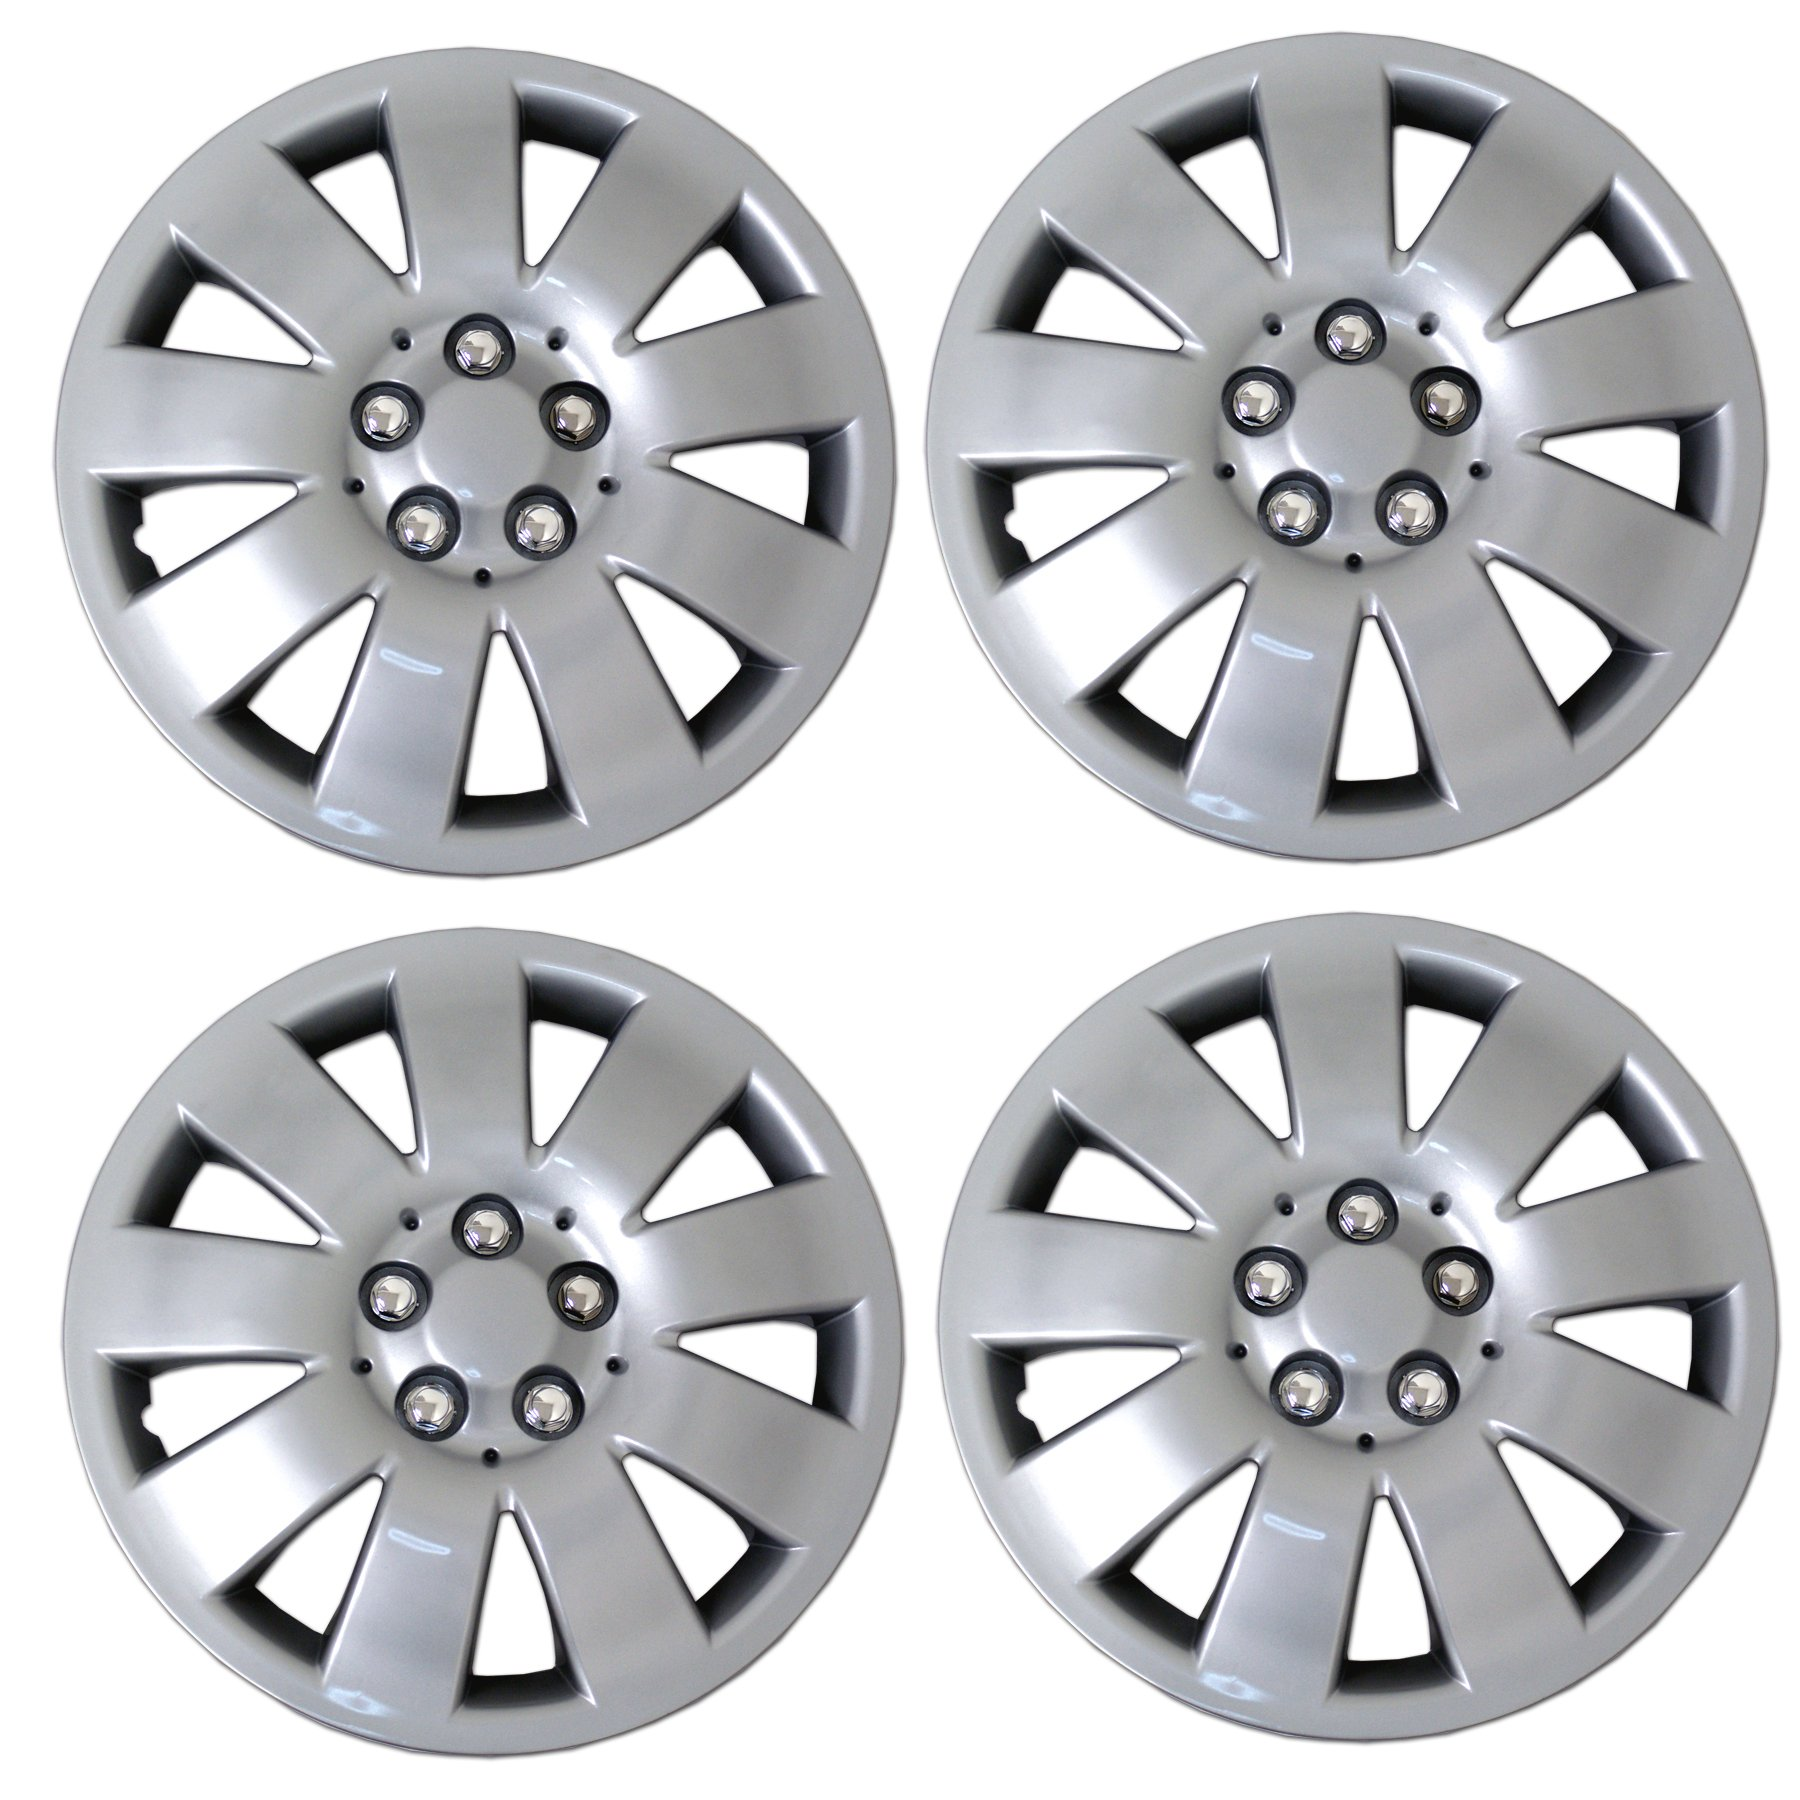 TuningPros WSC3-721S16 4pcs Set Snap-On Type (Pop-On) 16-Inches Metallic Silver Hubcaps Wheel Cover